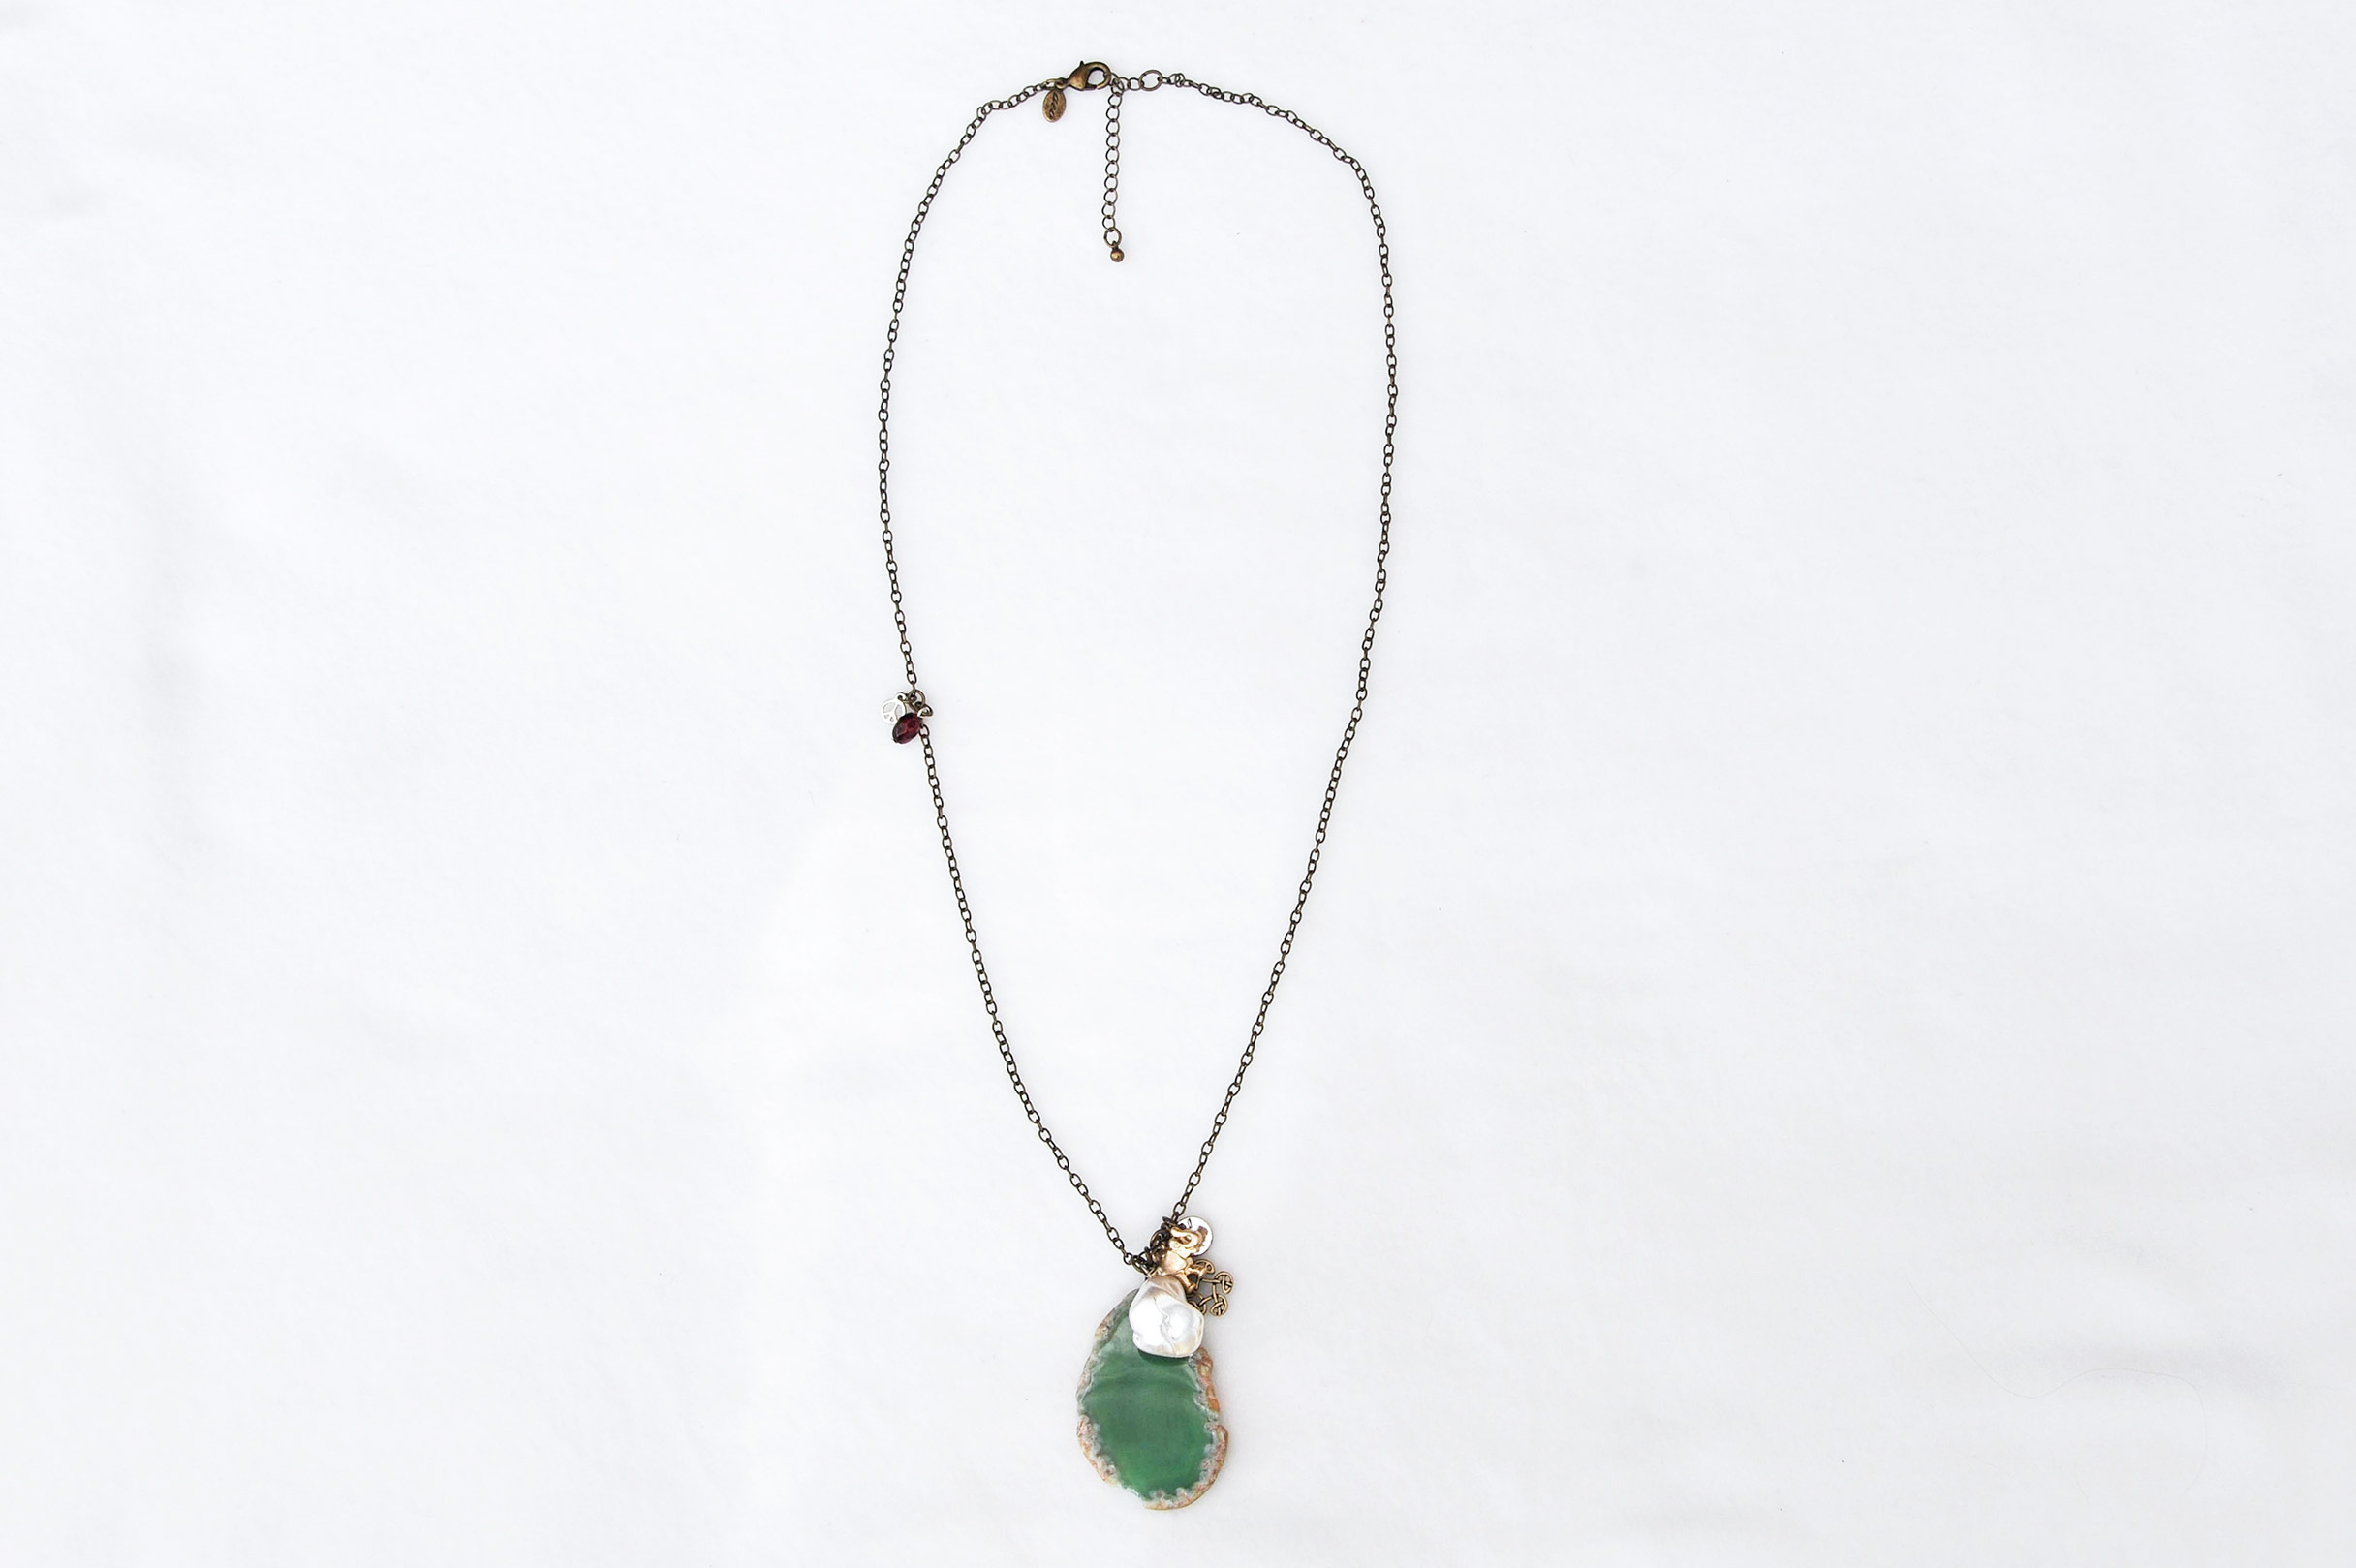 Necklace with Gem Stone. Design Providence Rhode Island USA